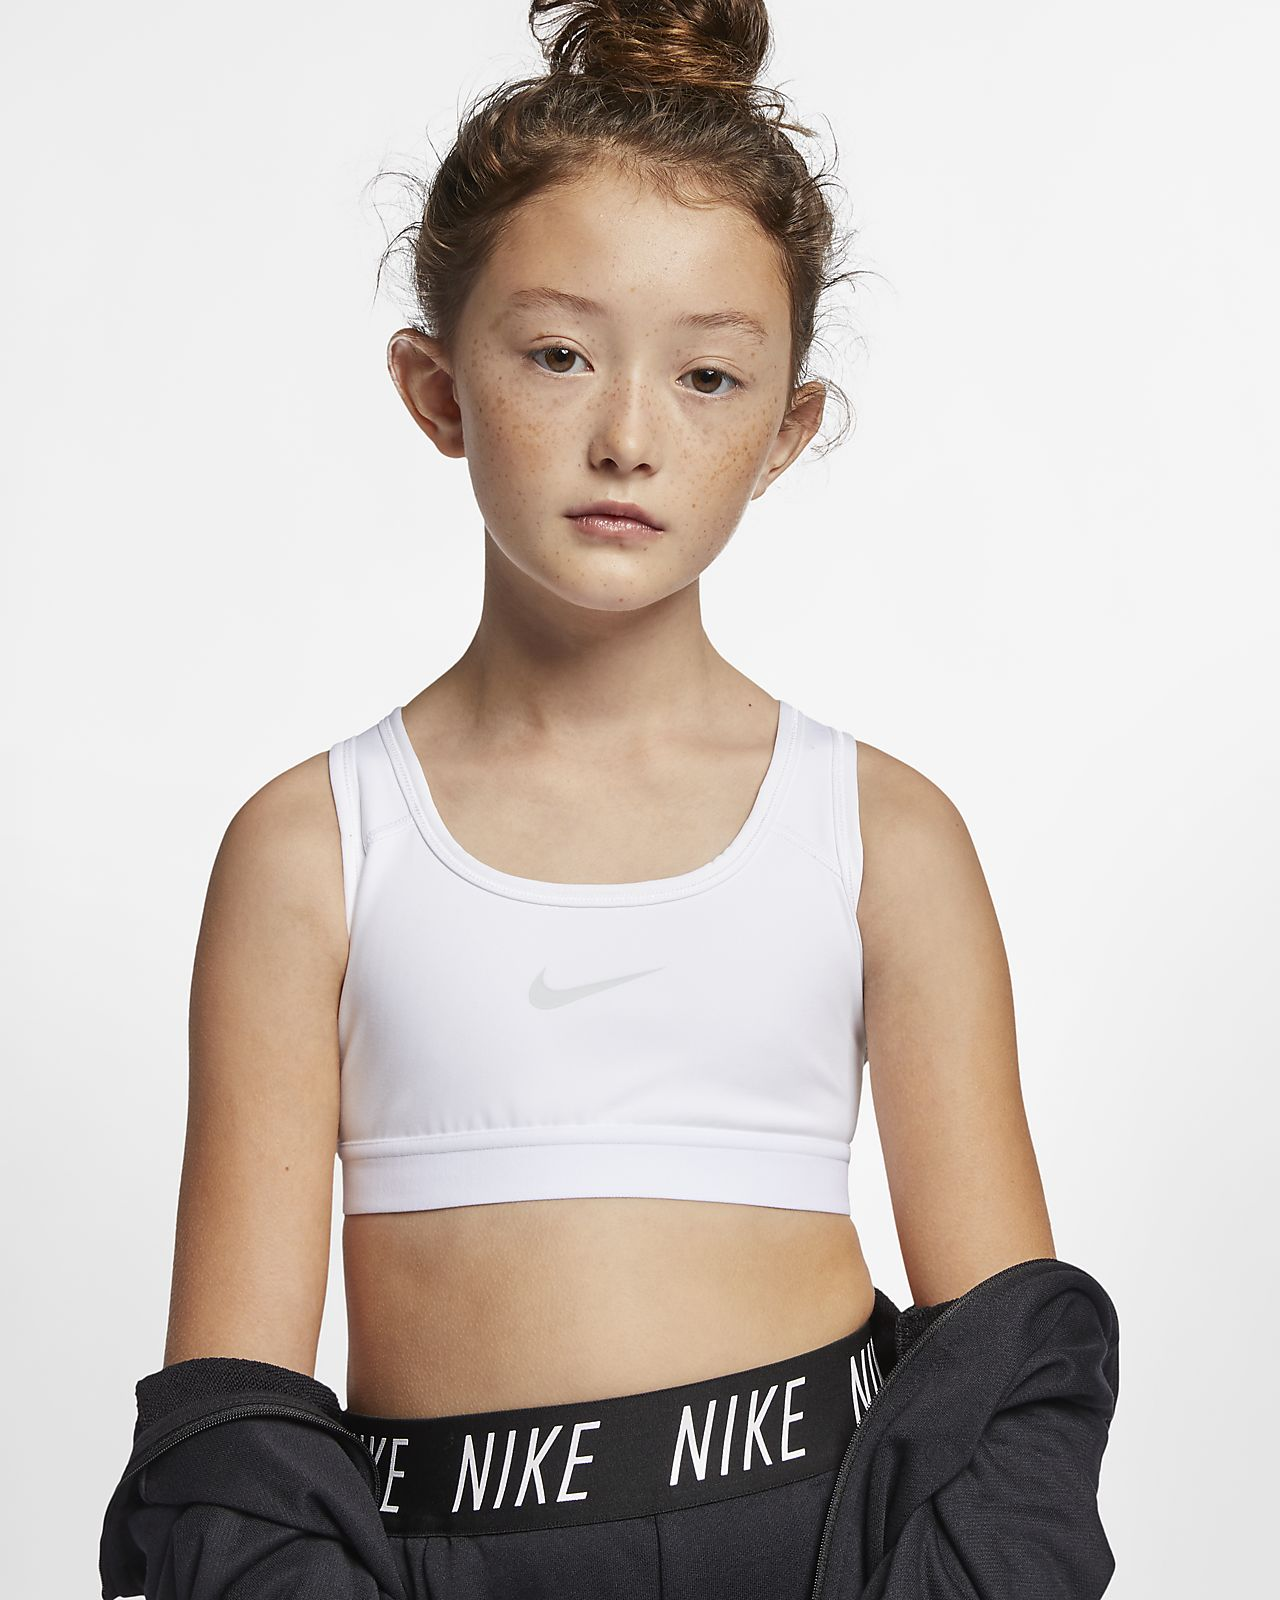 Nike Girls' Sports Bra